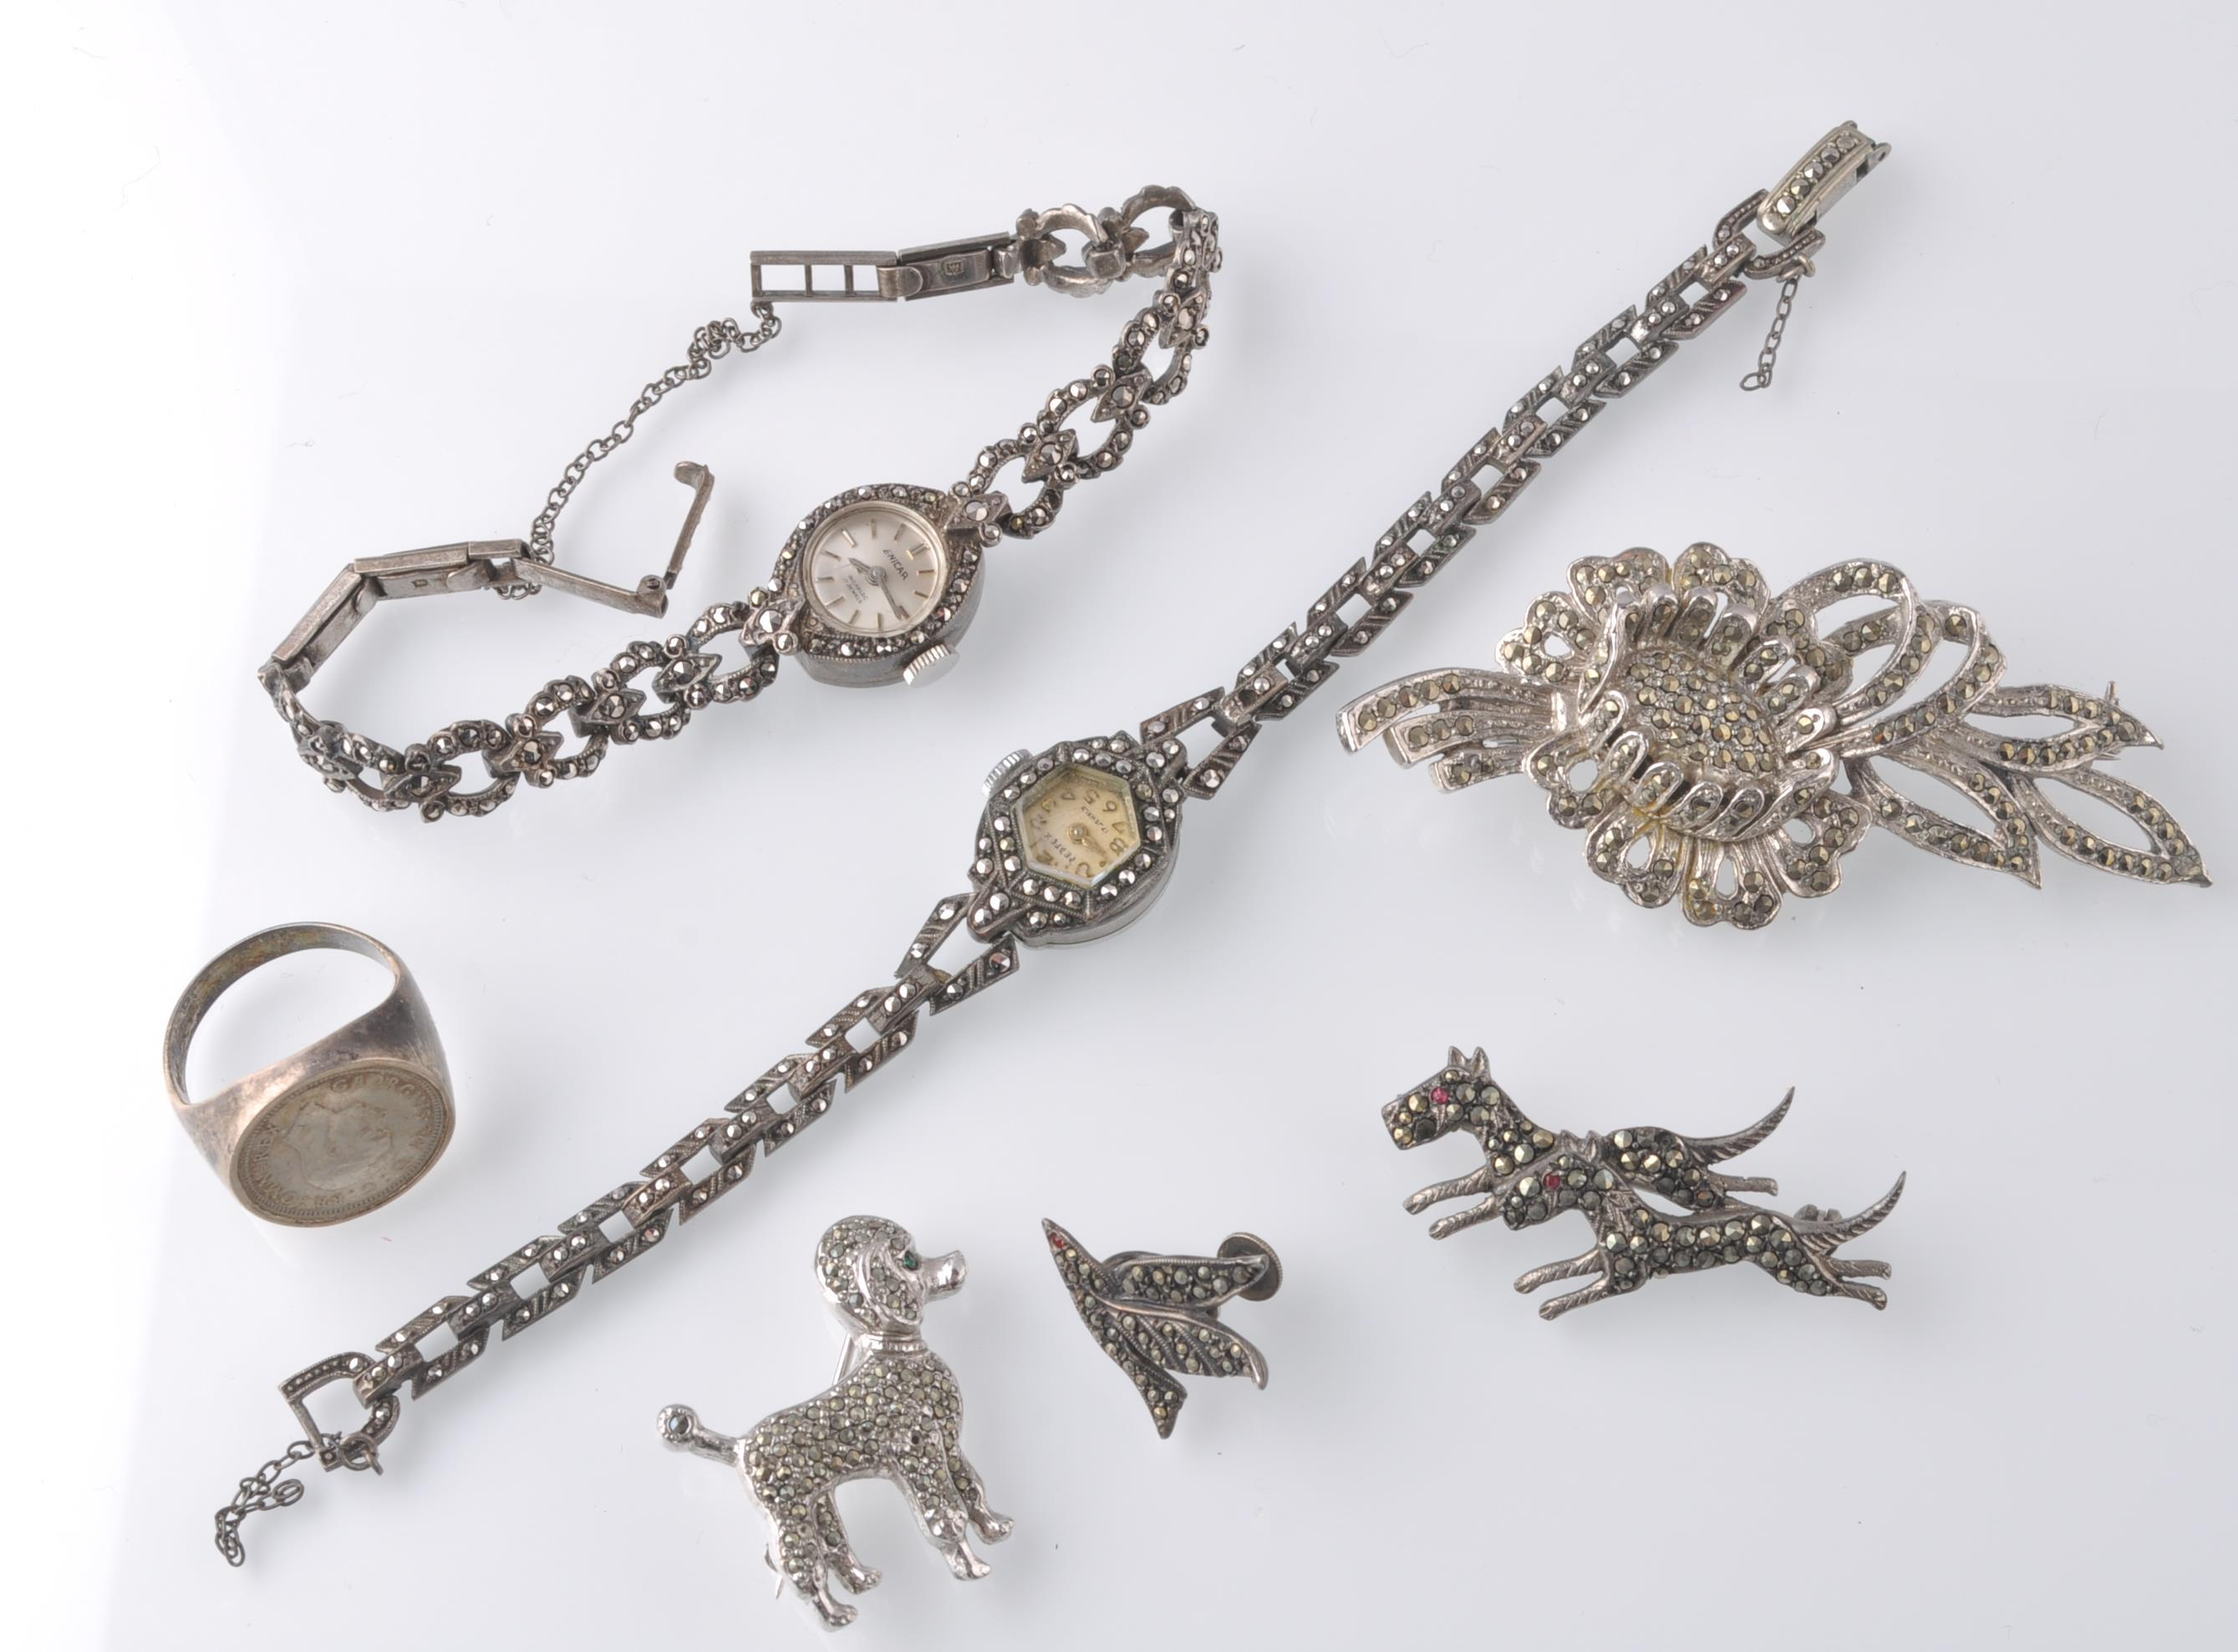 LARGE SELECTION OF SILVER AND WHITE METAL JEWELLER - Image 7 of 13